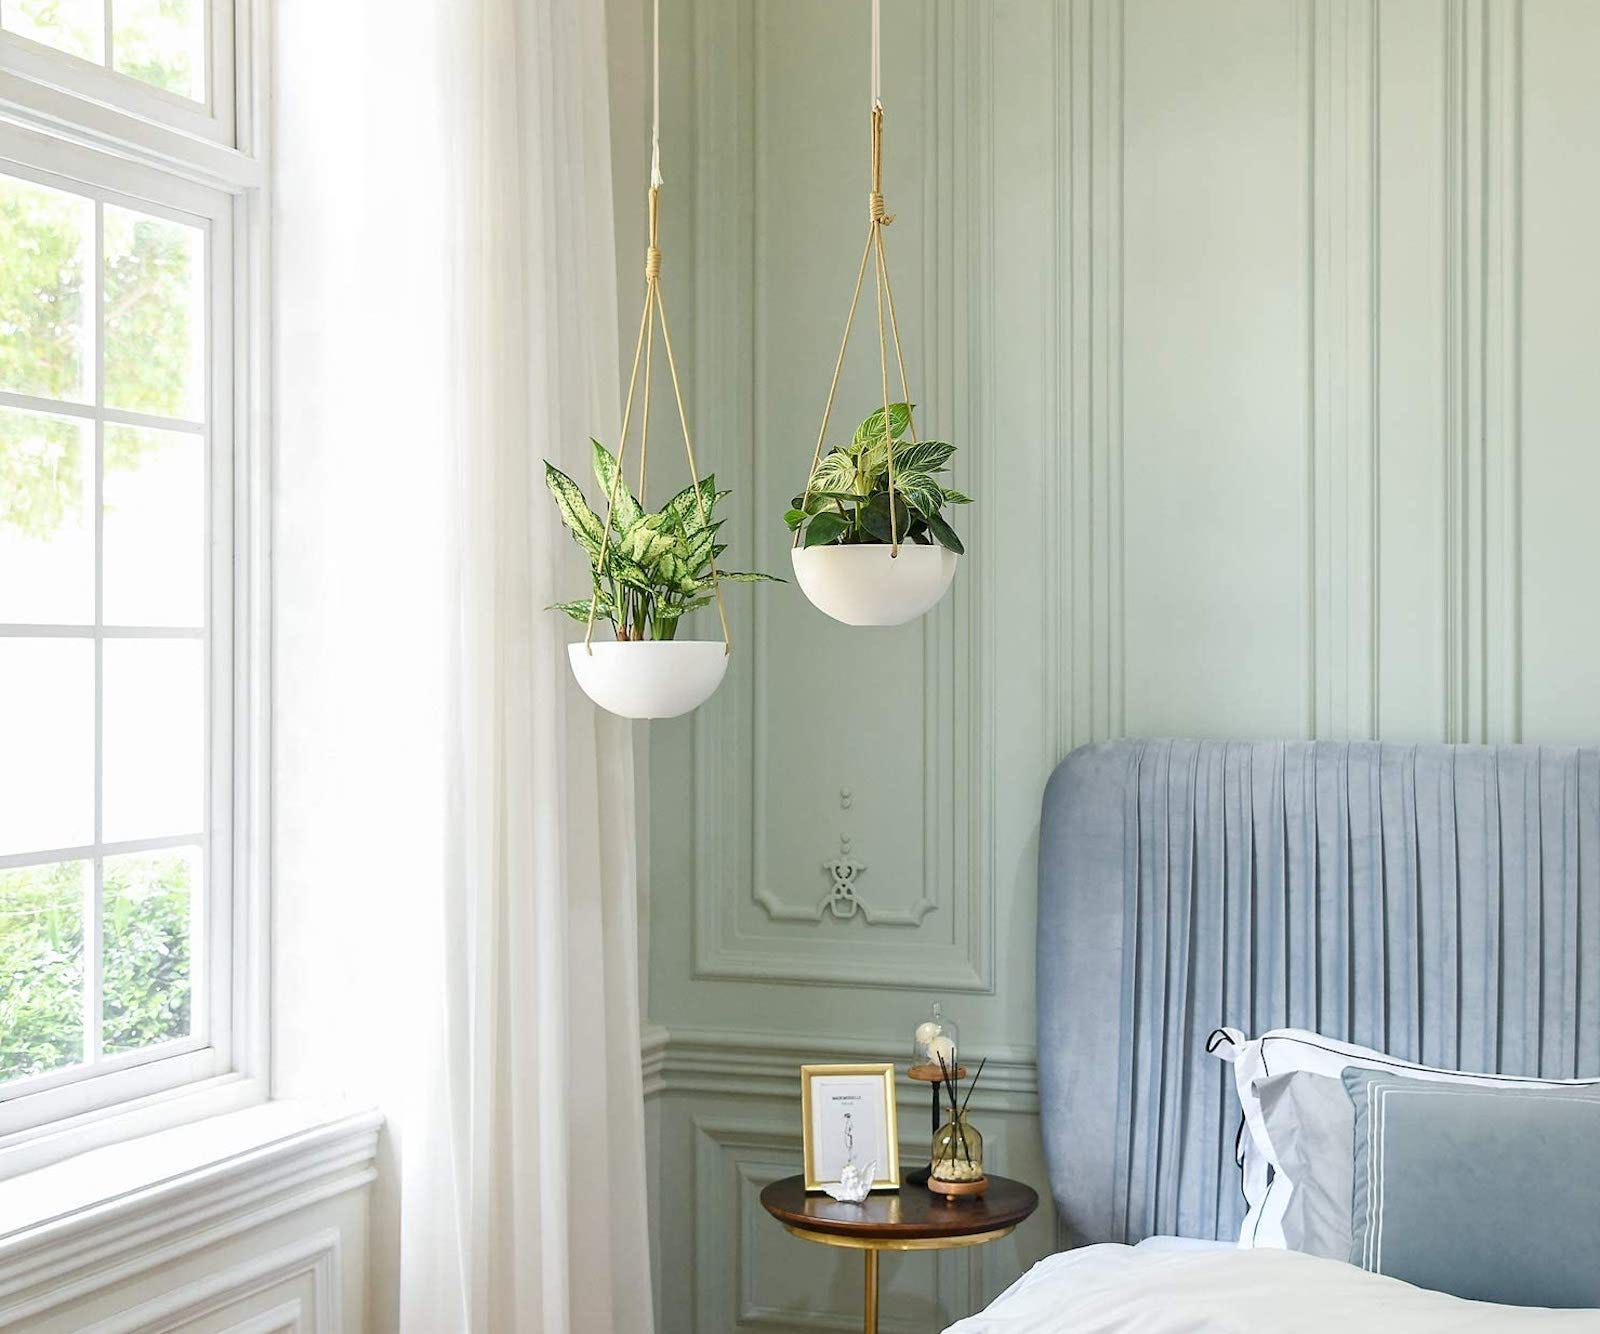 Two of the Mkono Ceramic Planters hanging in the corner of a bedroom.